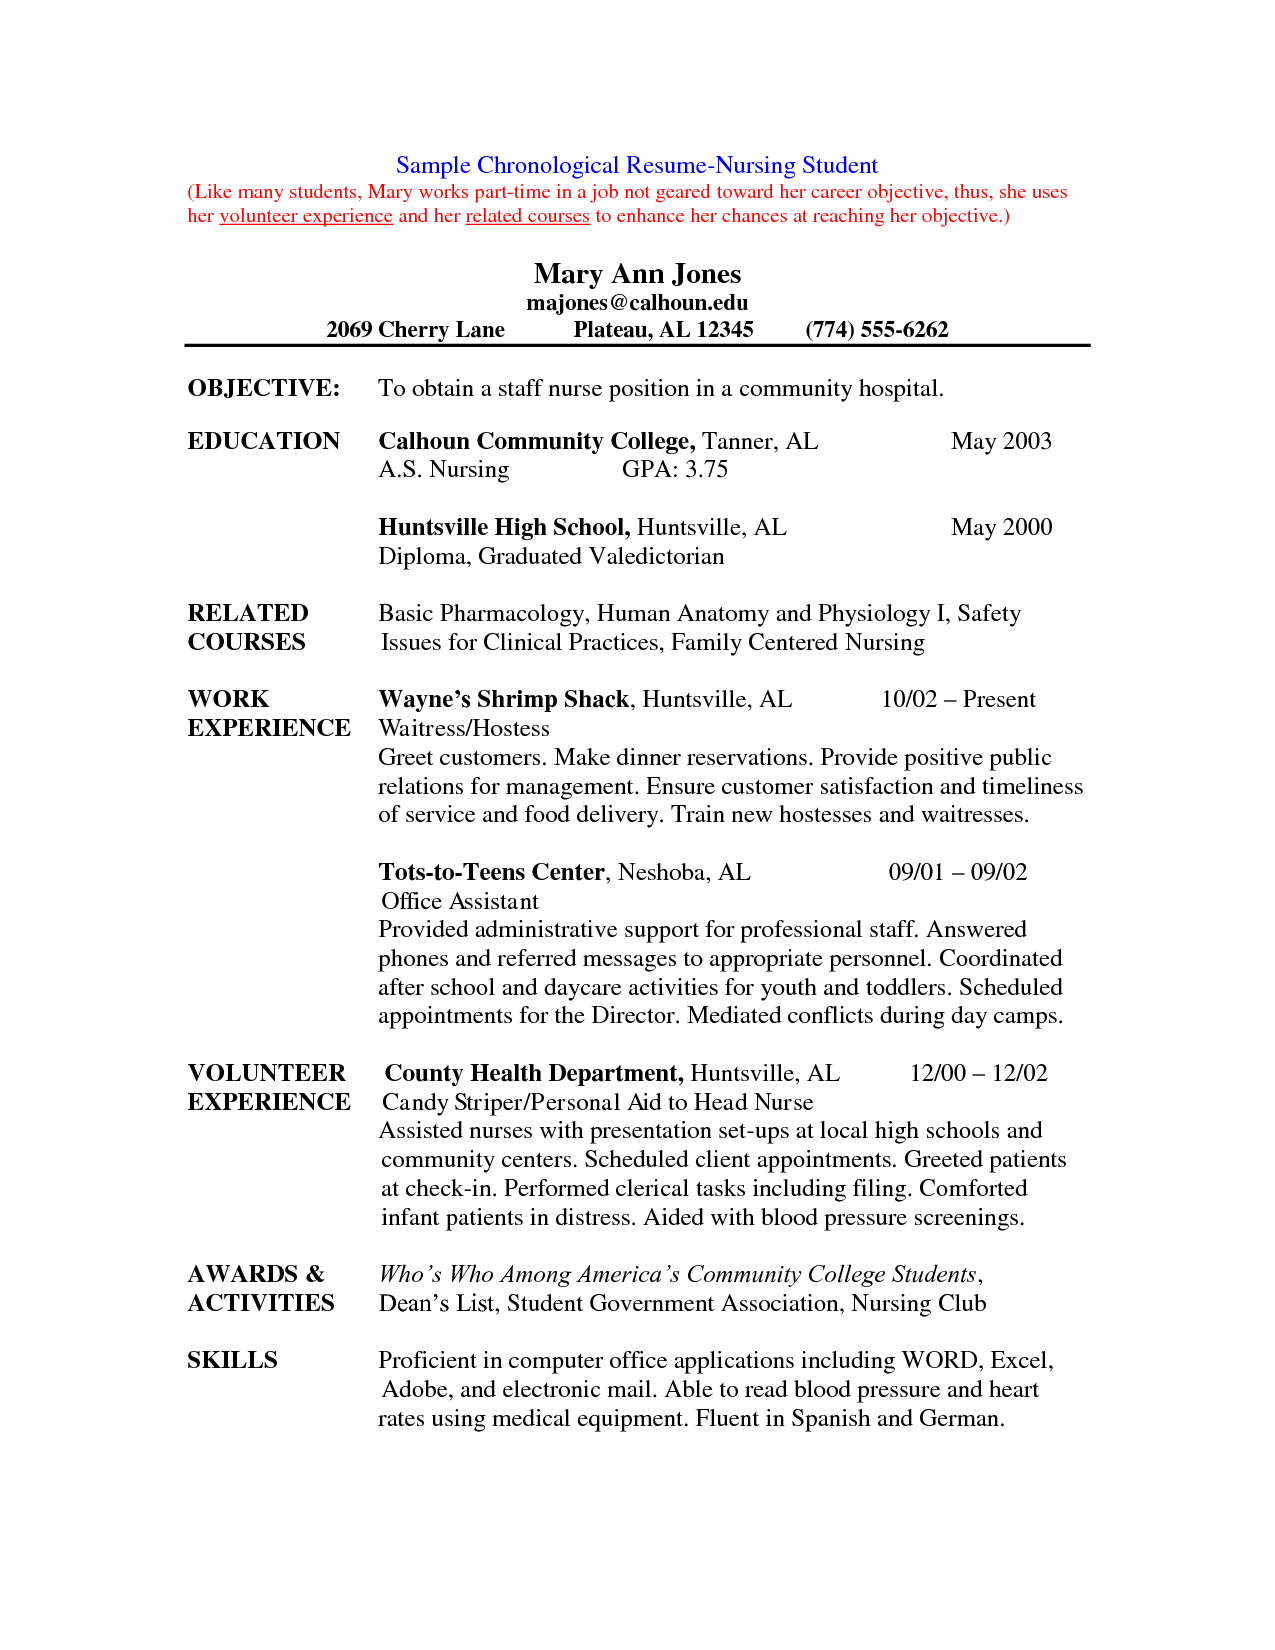 cover letters for nursing job application pdf nursing cover letters for nursing job application pdf